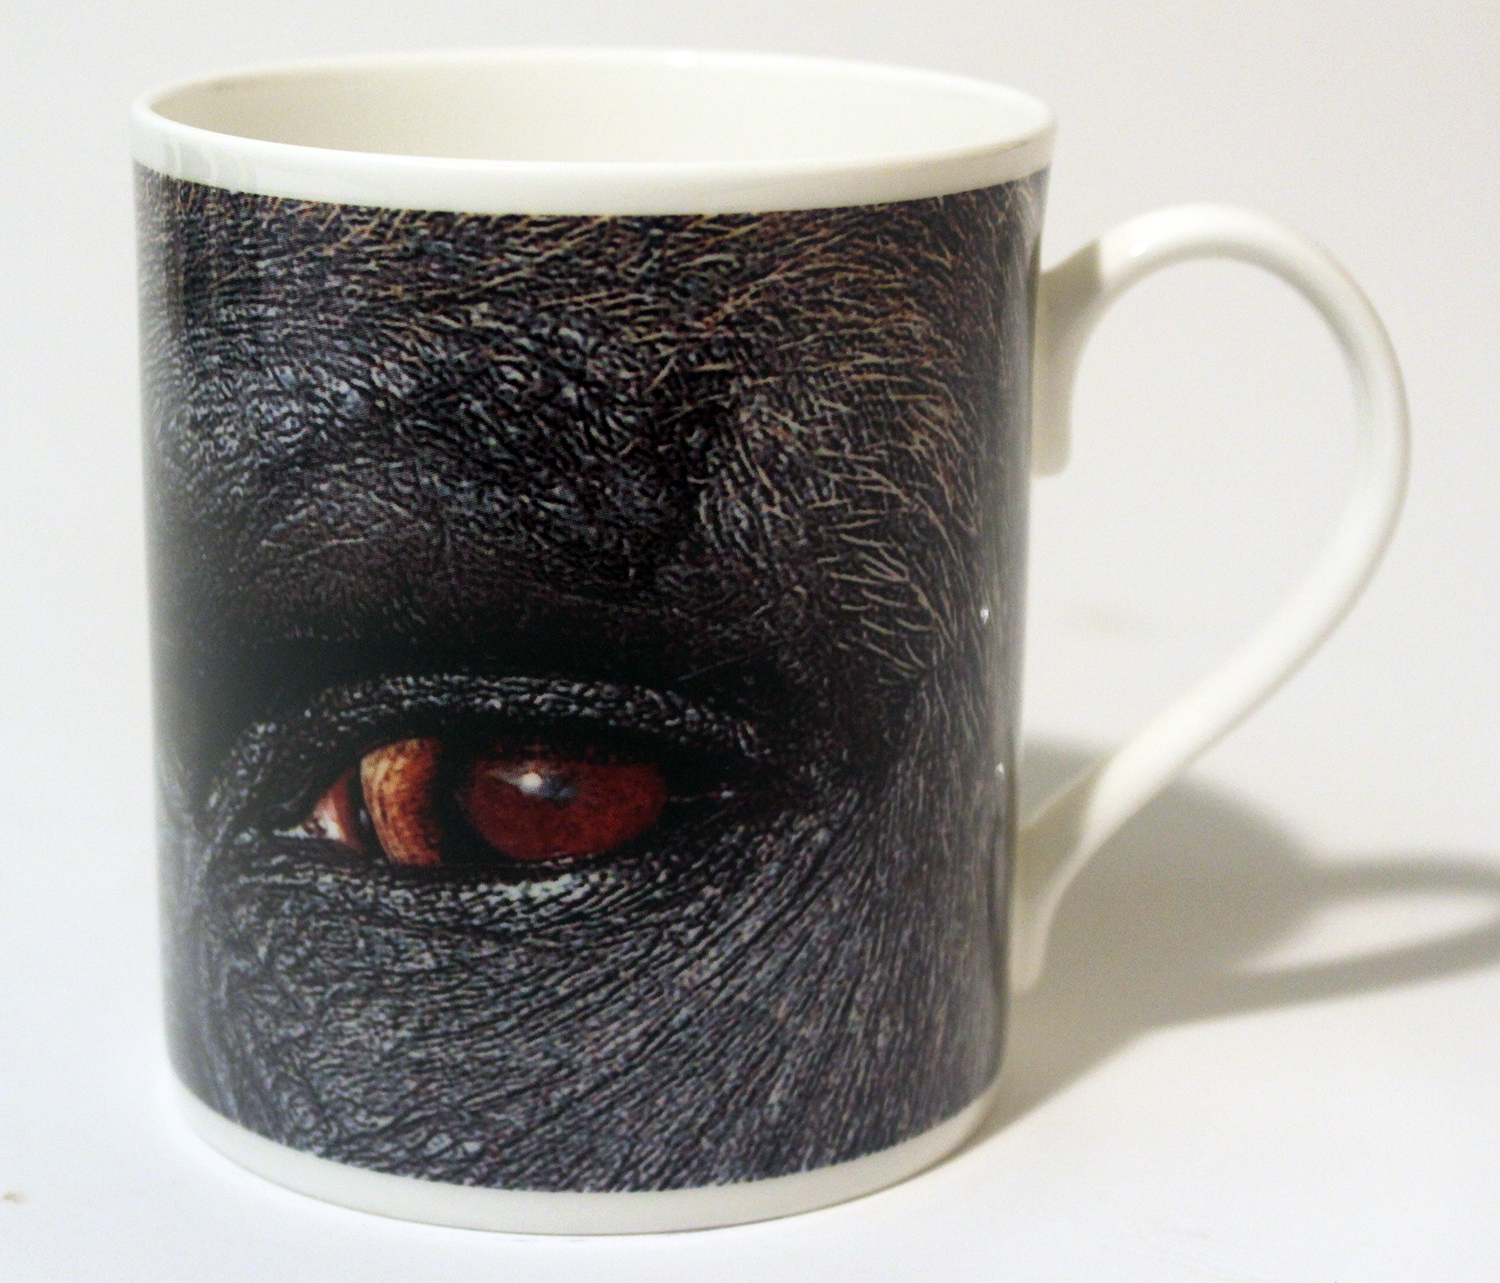 China Mug – Gorilla Eyes